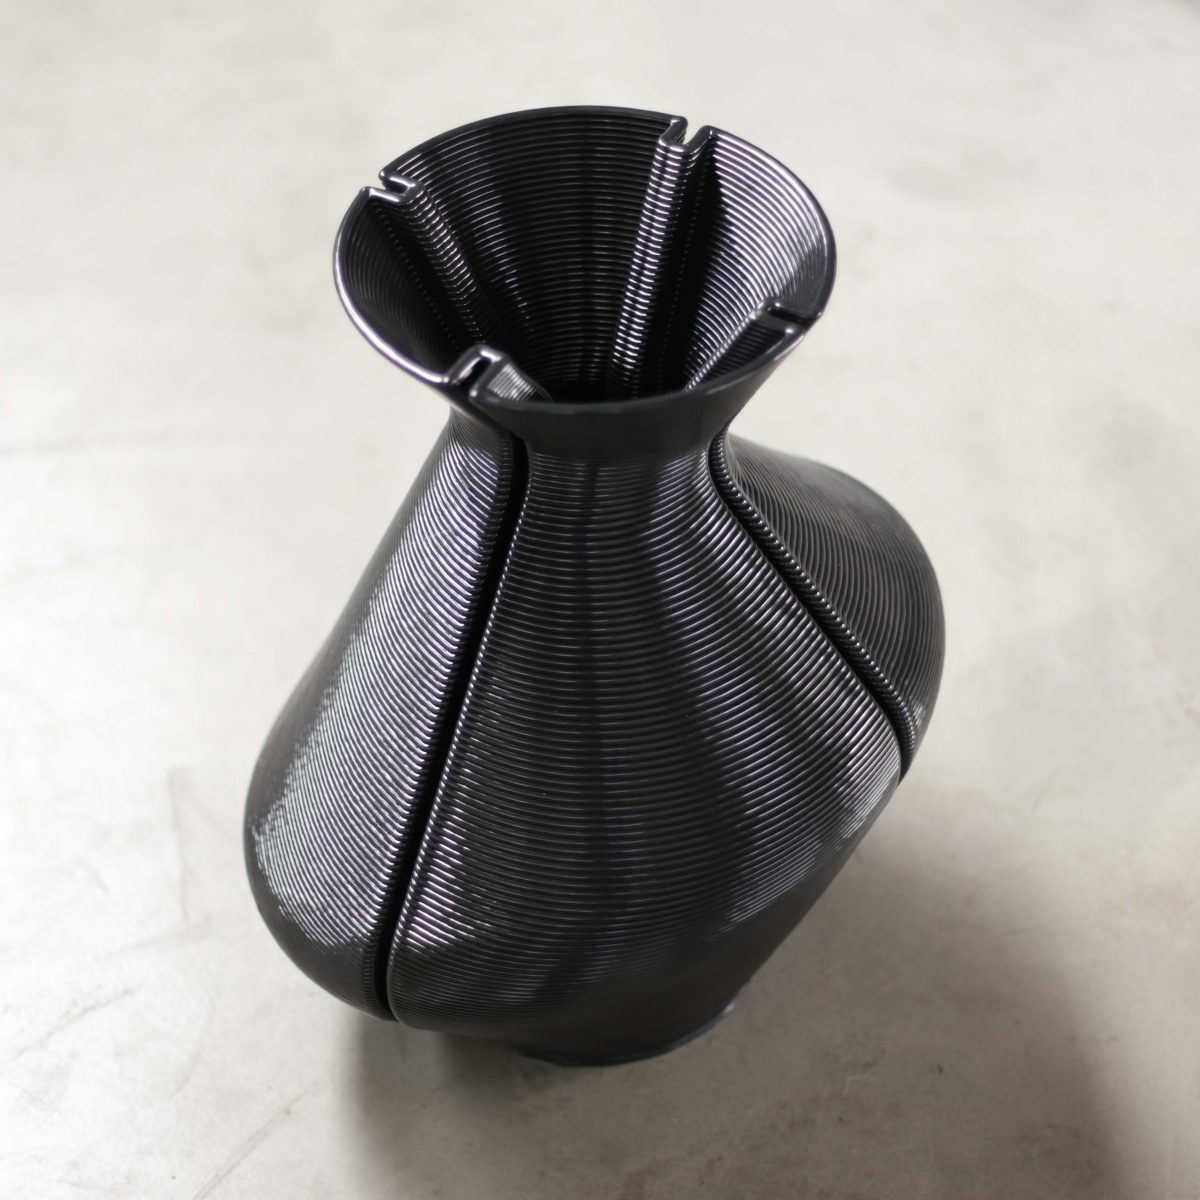 Changing Vase, zwart. Photo Studio Dirk Vander Kooij (4)